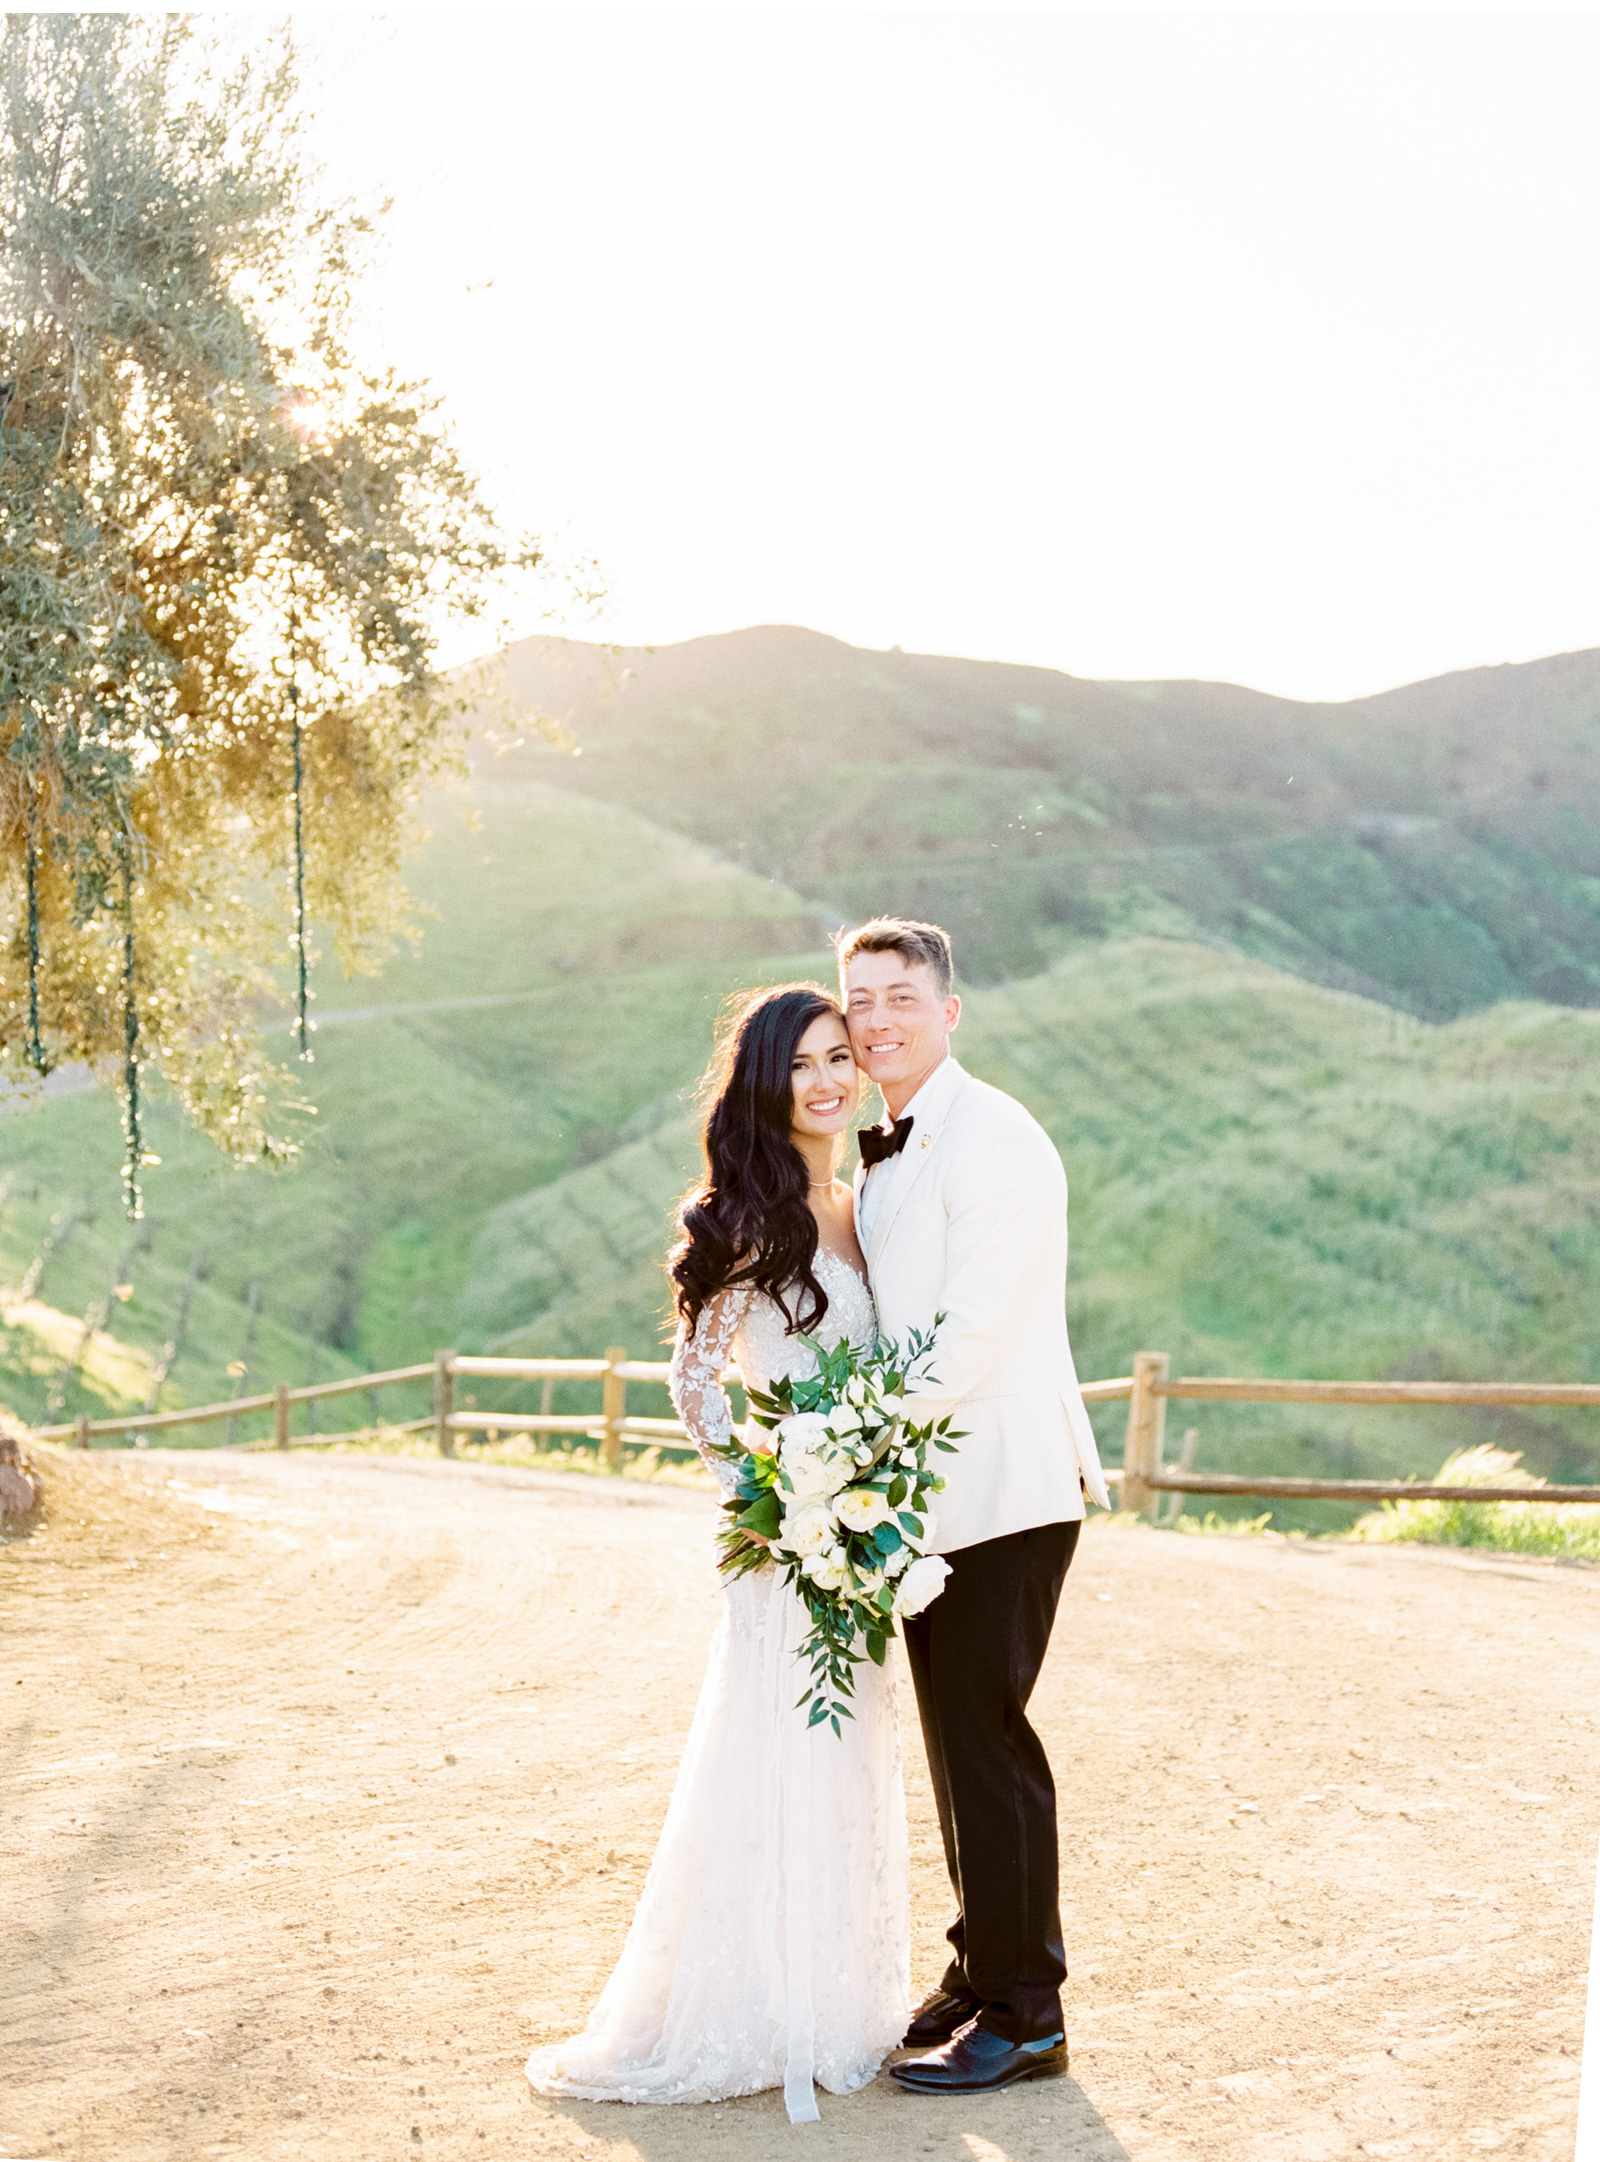 West-Coast-Weddings-Southern-California-Wedding-Photographer-Style-Me-Pretty-Fine-Art-Triunfo-Creek-Malibu-Natalie-Schutt-Photography_04.jpg